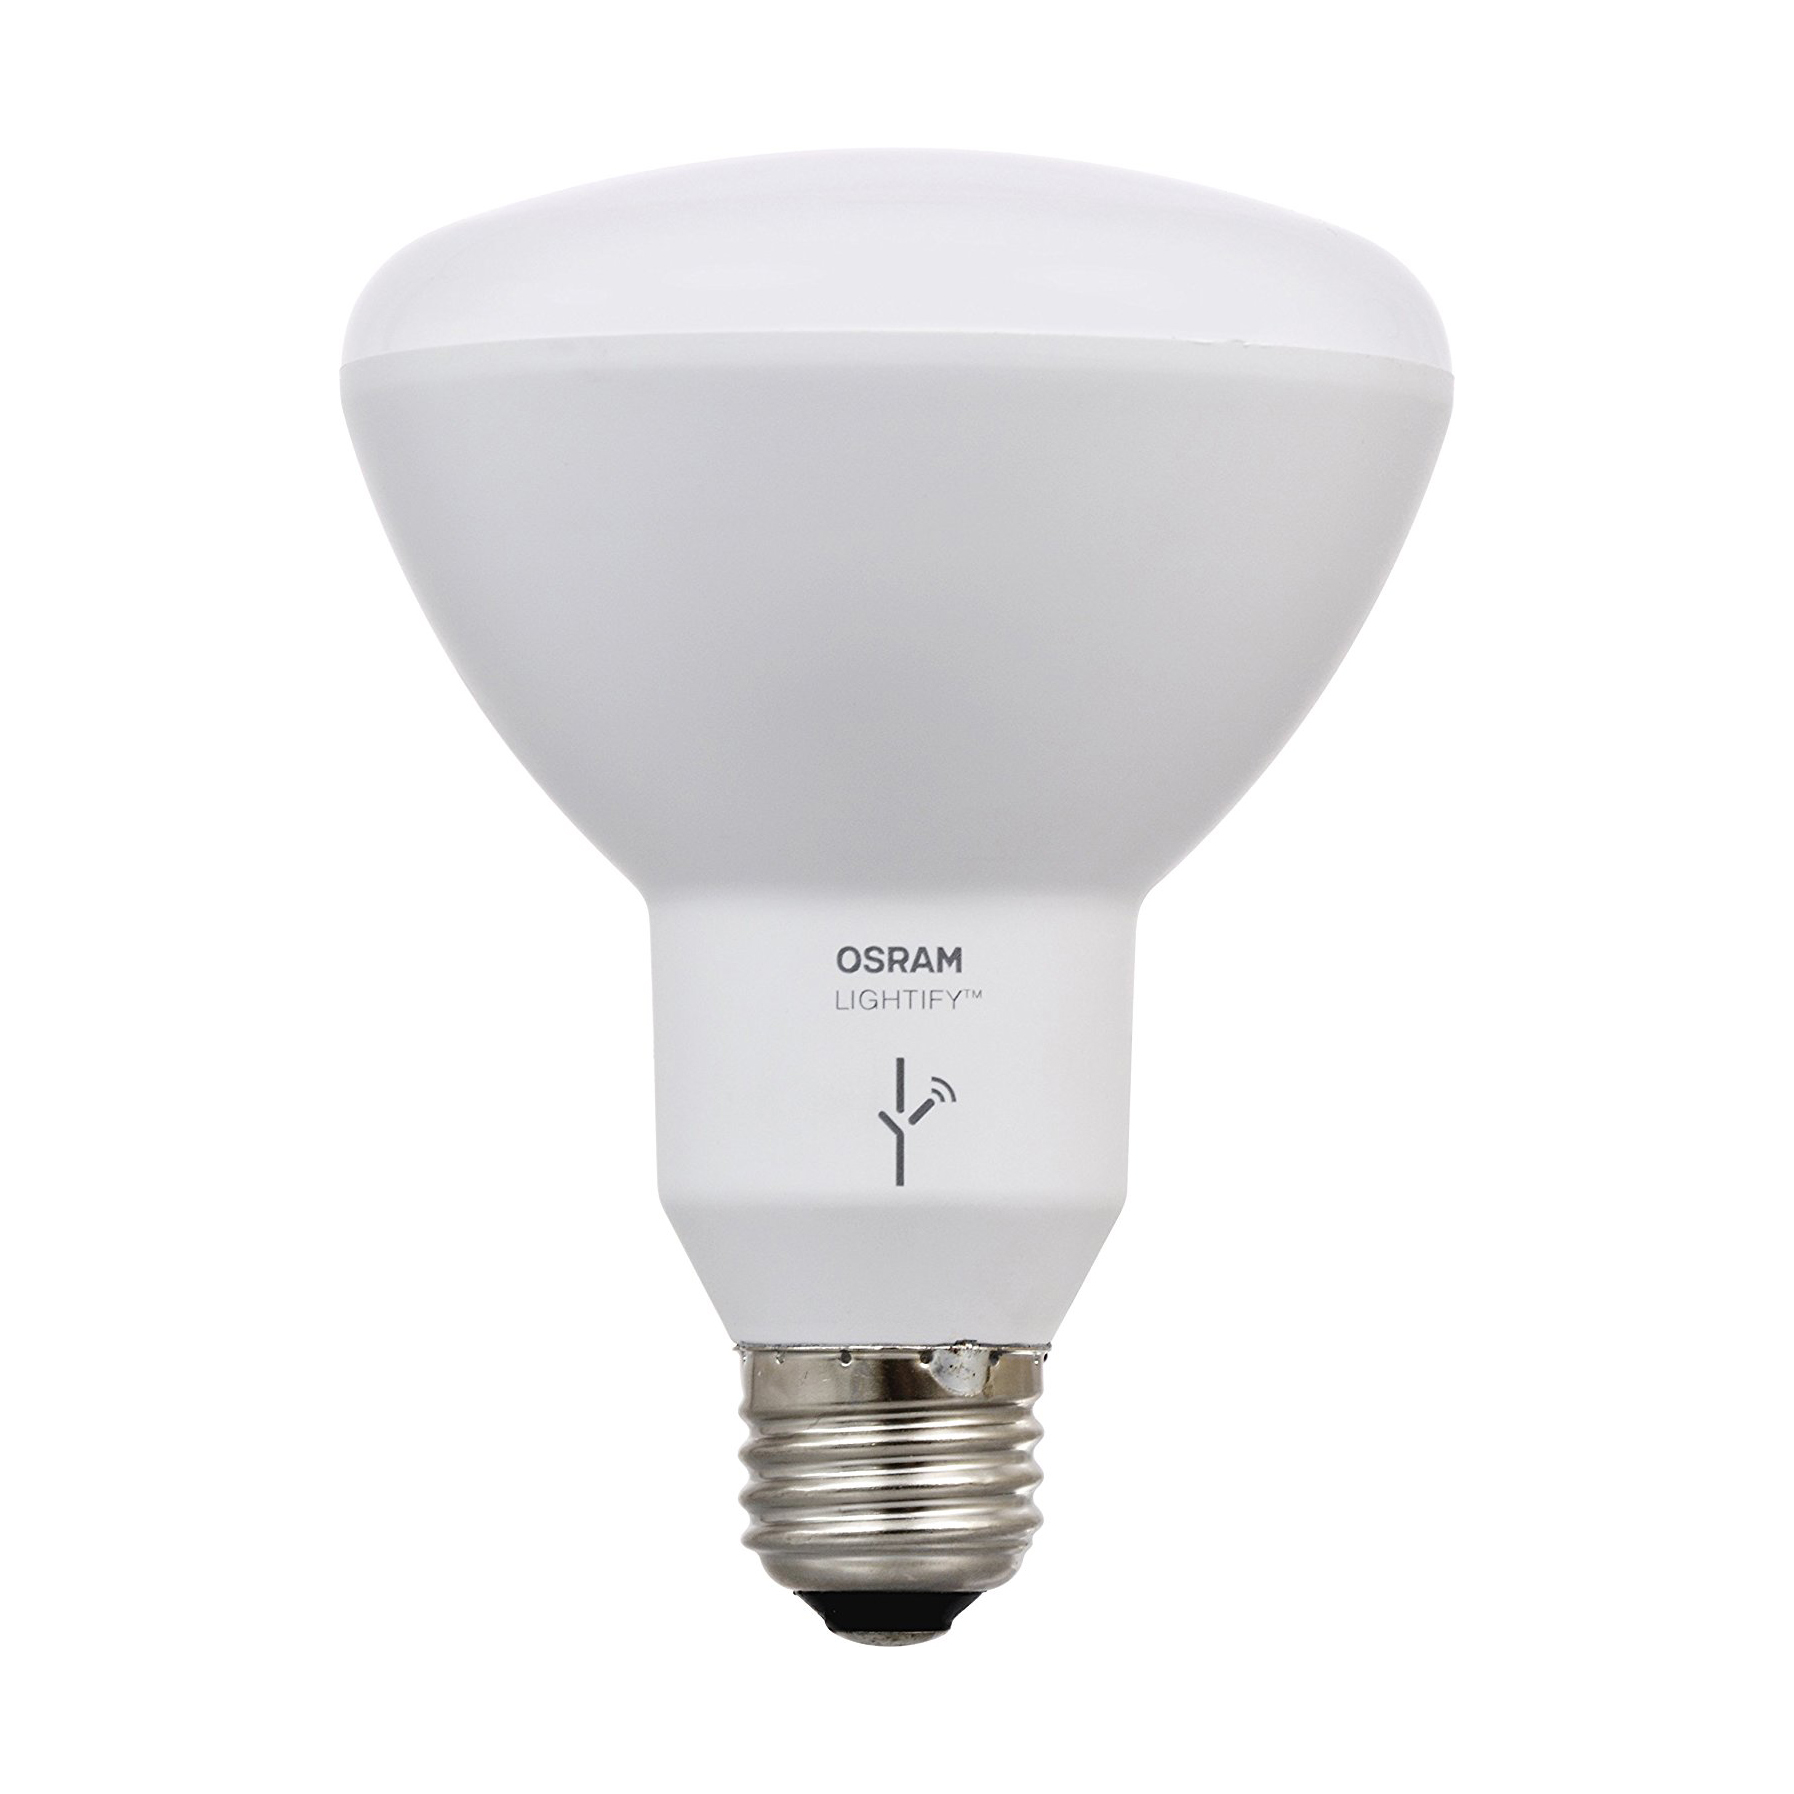 dimmable bulb zoom can torchstar bulbs led light